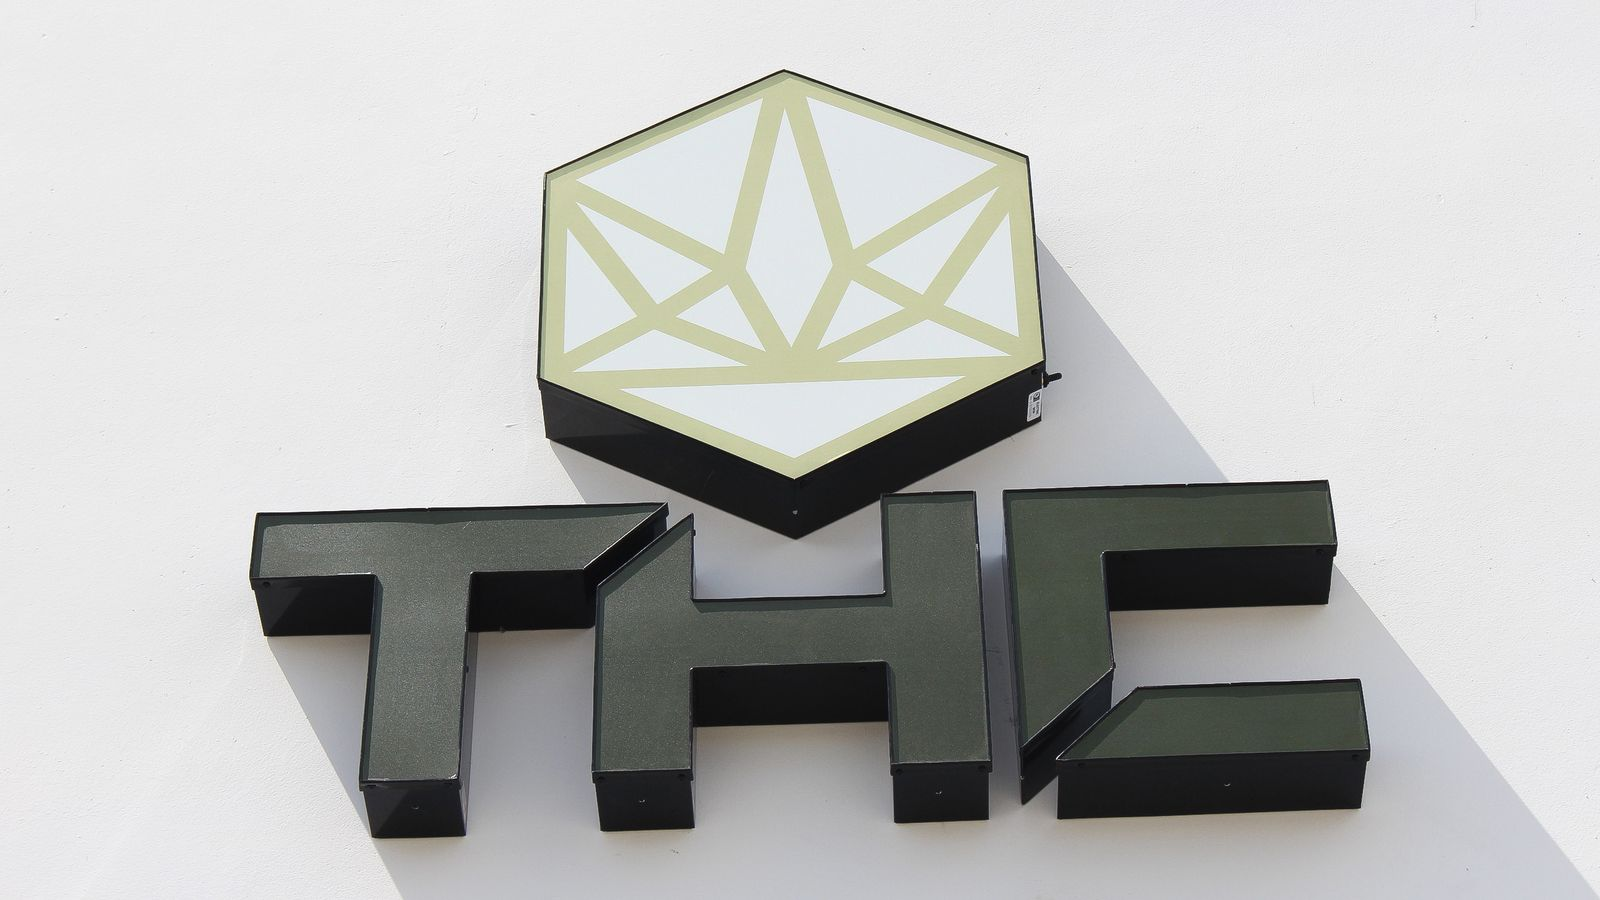 THC 3d logo sign and brand name letters made of aluminum and acrylic for outdoor branding and visibility